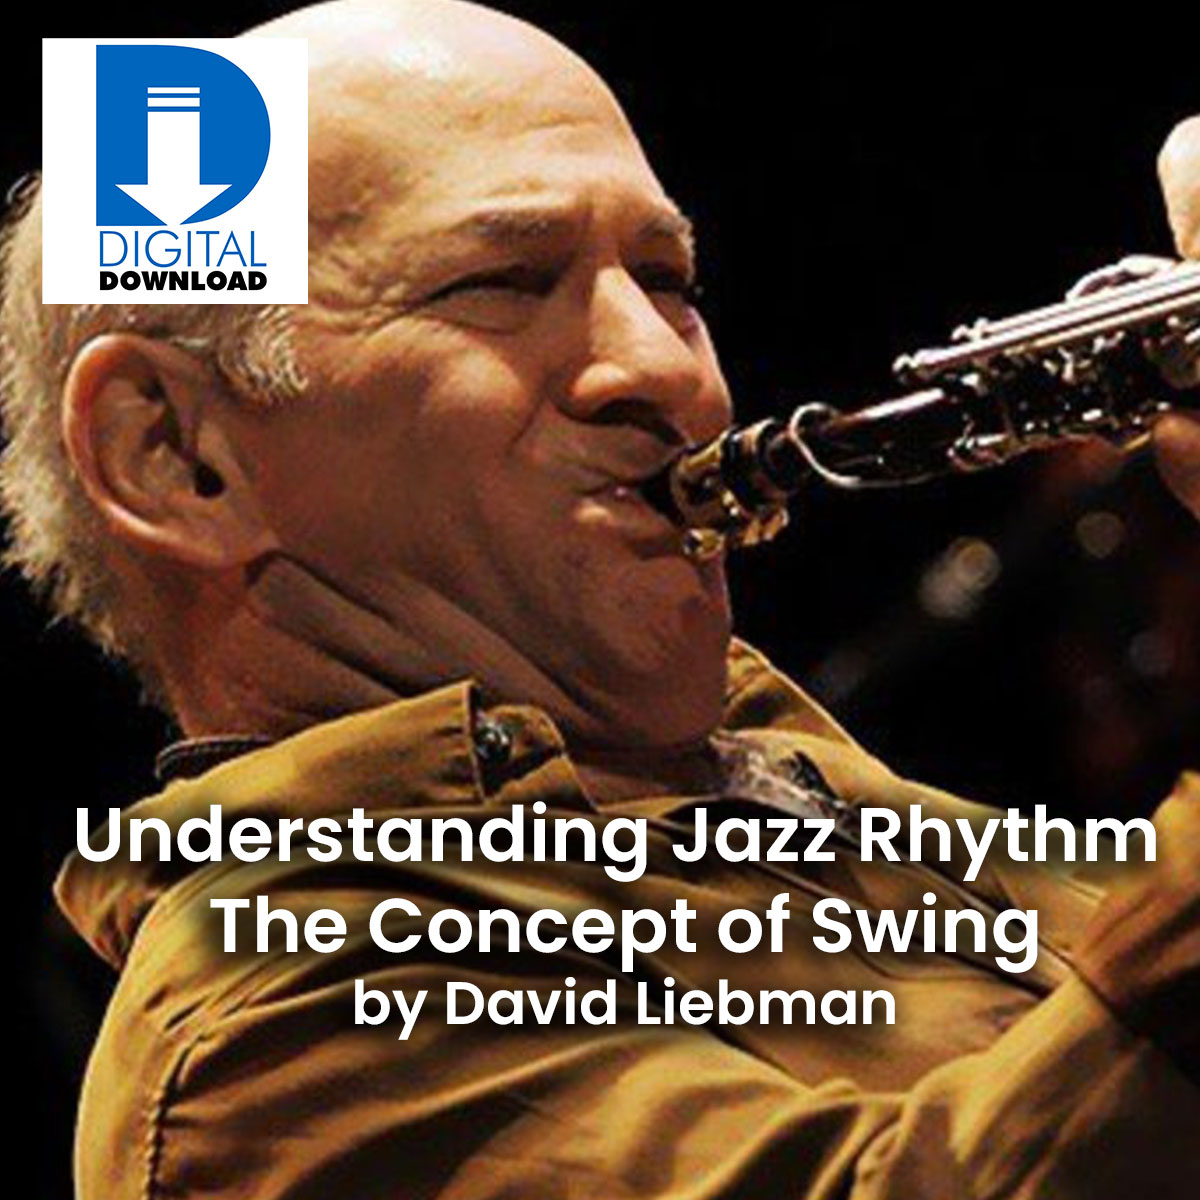 Understanding Jazz Rhythm: The Concept of Swing - DVD